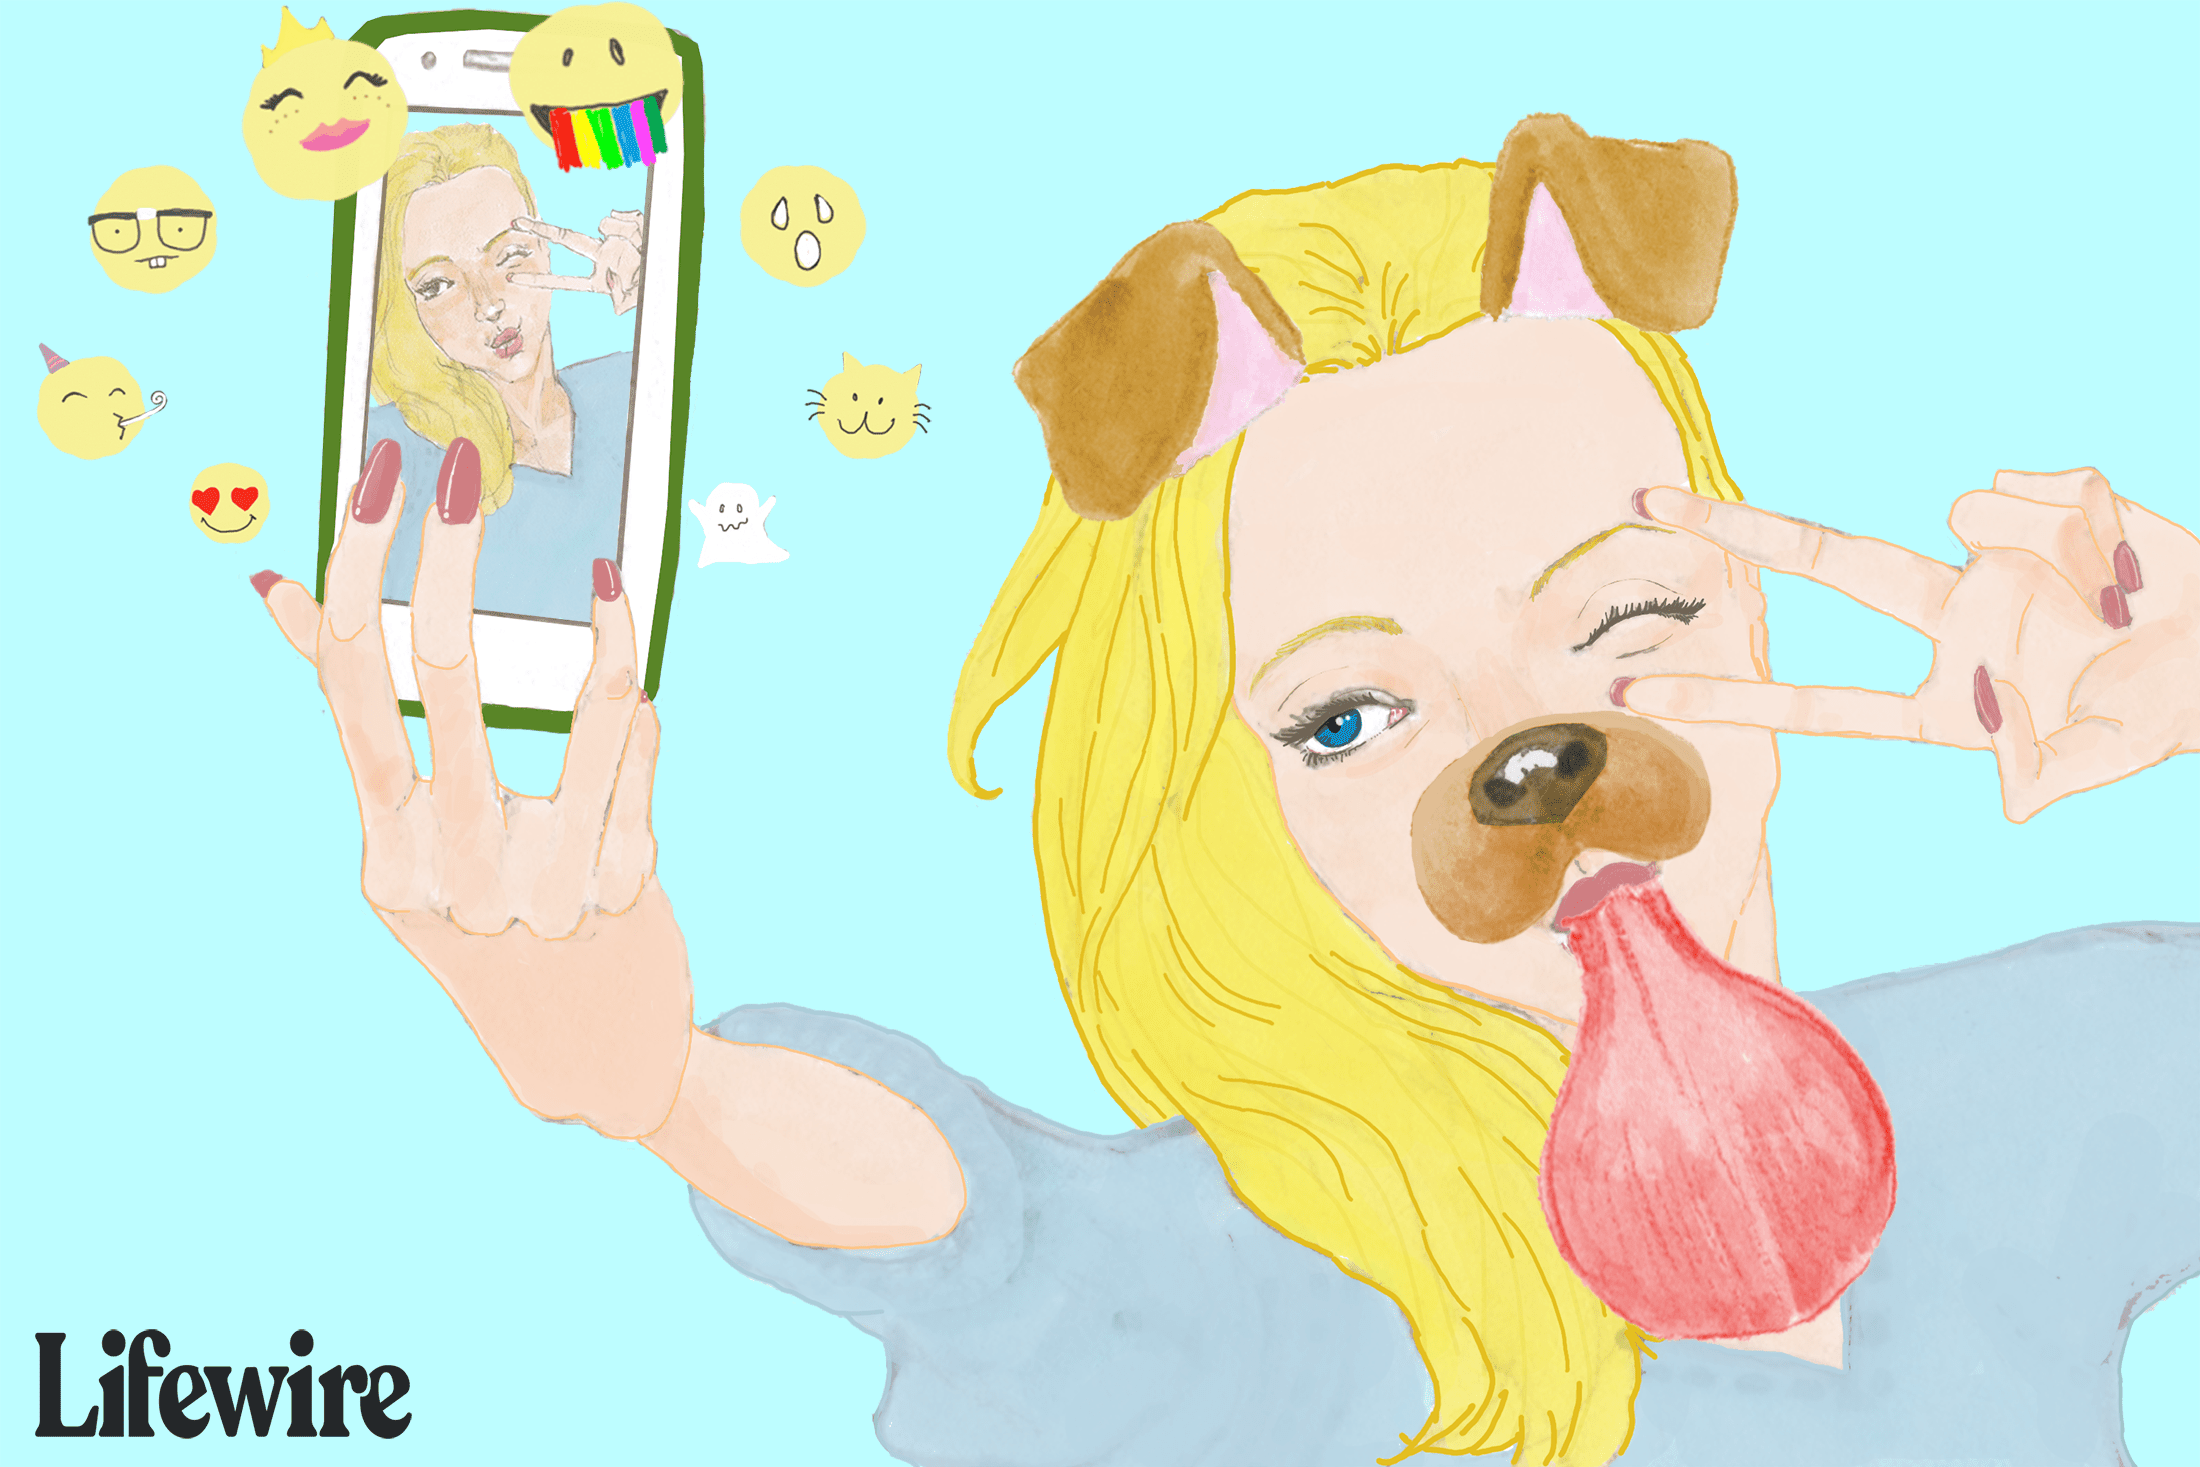 A woman using a funny Snapchat filter